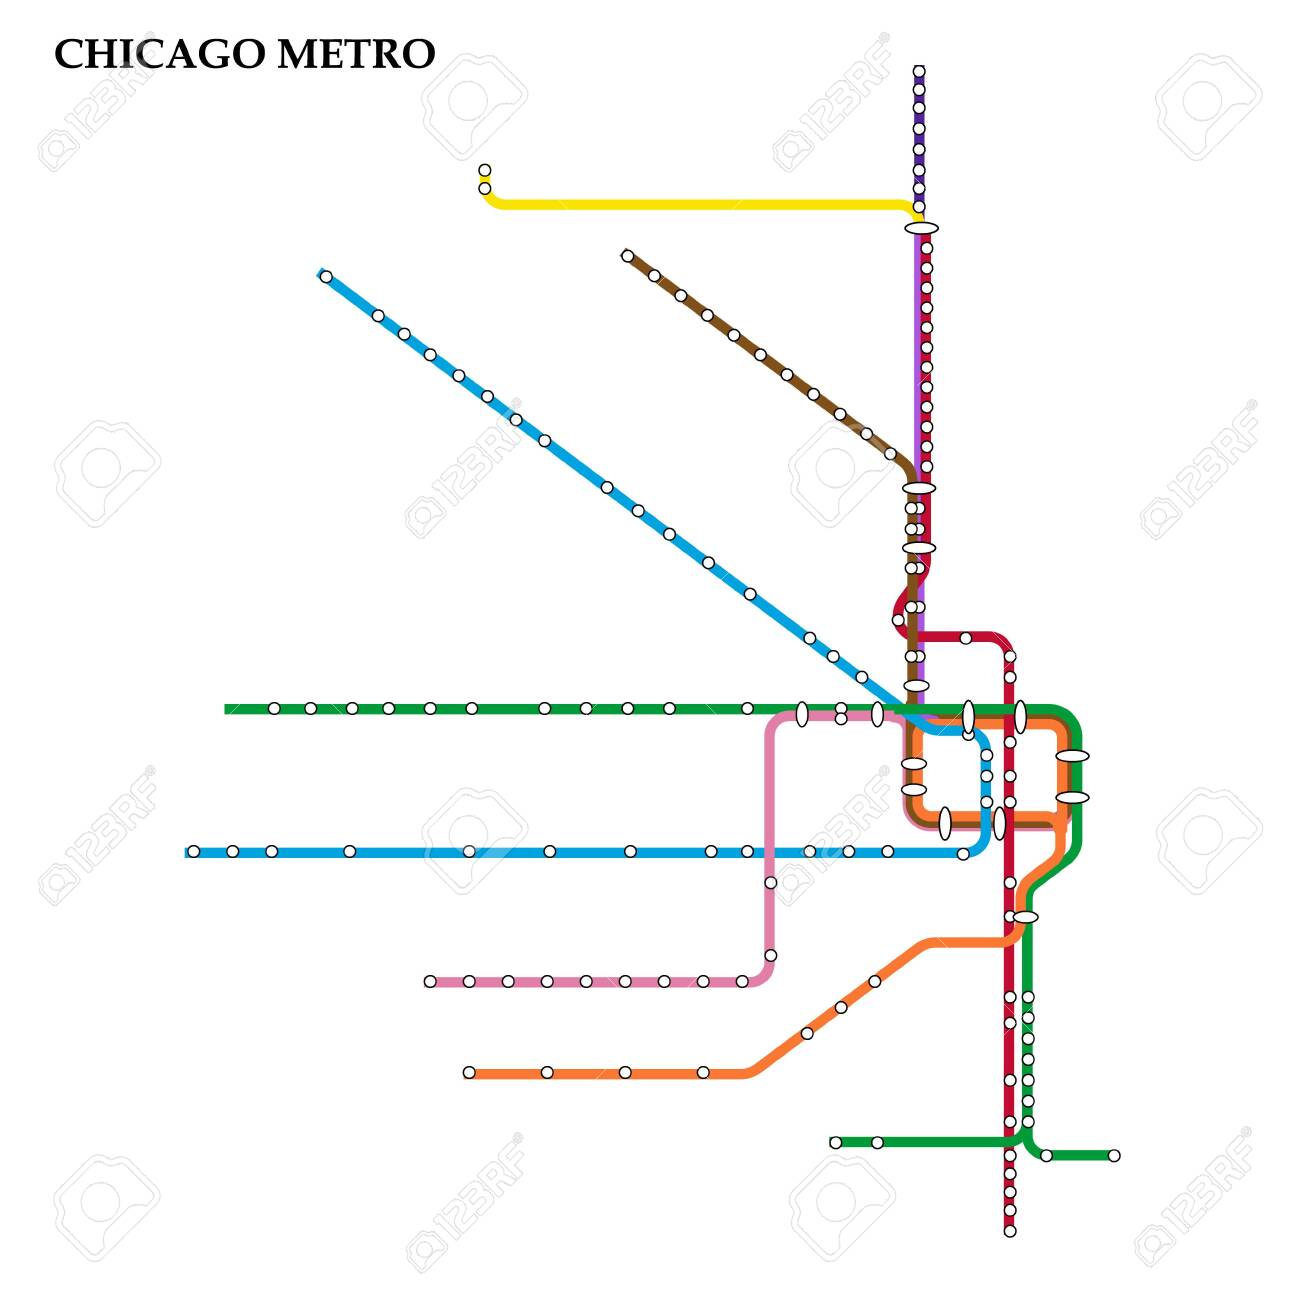 Map Chicago Metro on downtown chicago map, chicago metra train stops, chicago airport map, chicago l map, chicago south map, chicago suburbs map, city center chicago il map, chicago walmart map, chicago global map, chicago metropolitan area map, chicago neighborhood map, chicago loop map, greater chicago map, chicago on us map, chicago jazz festival map, chicago colorado map, chicago metra map, chicago street map, chicago restaurants map, chicago city bus map,